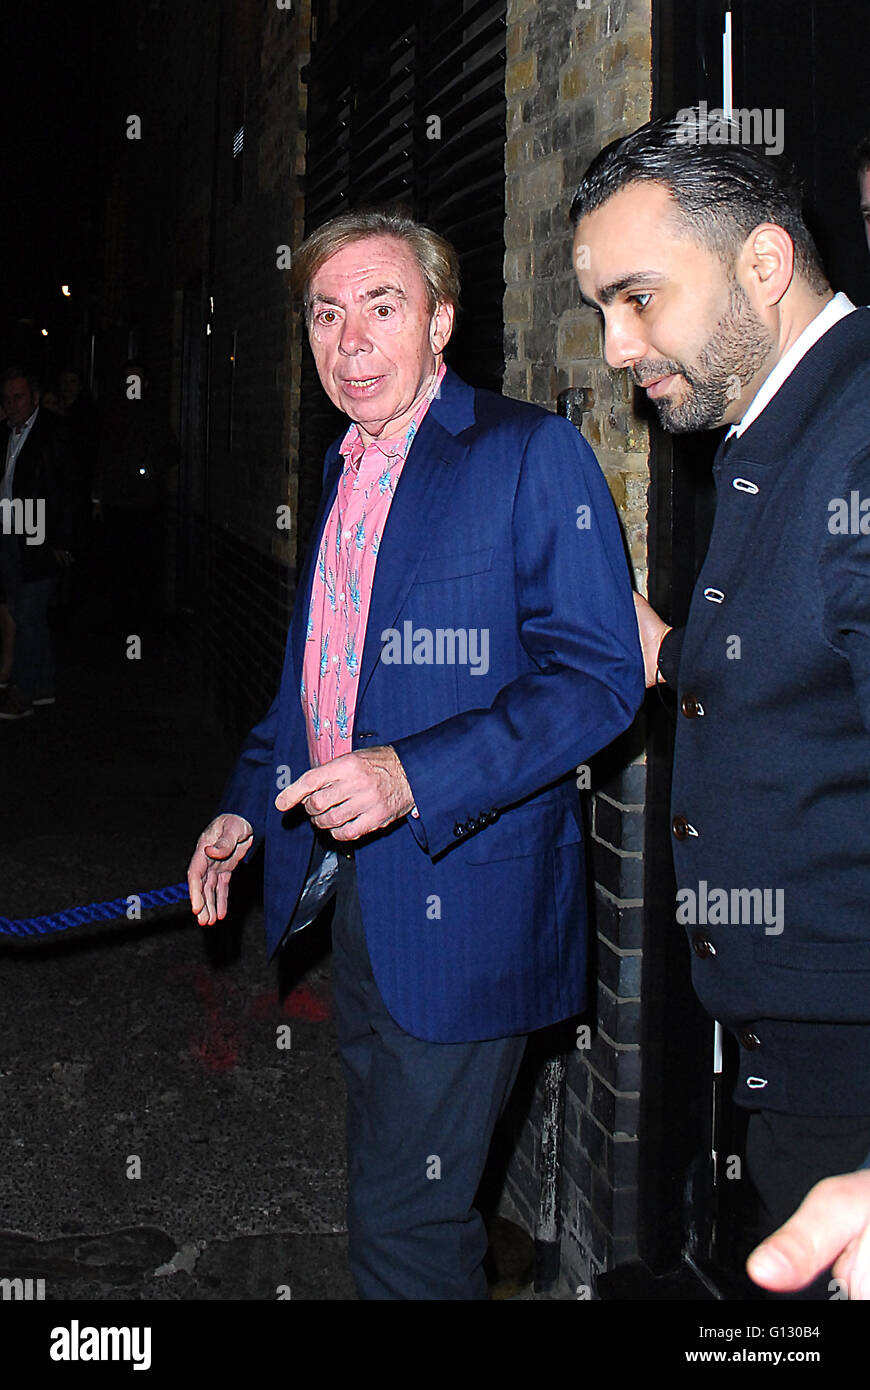 Celebrities leaving Chiltern Firehouse after Michael Mcintyre Stock